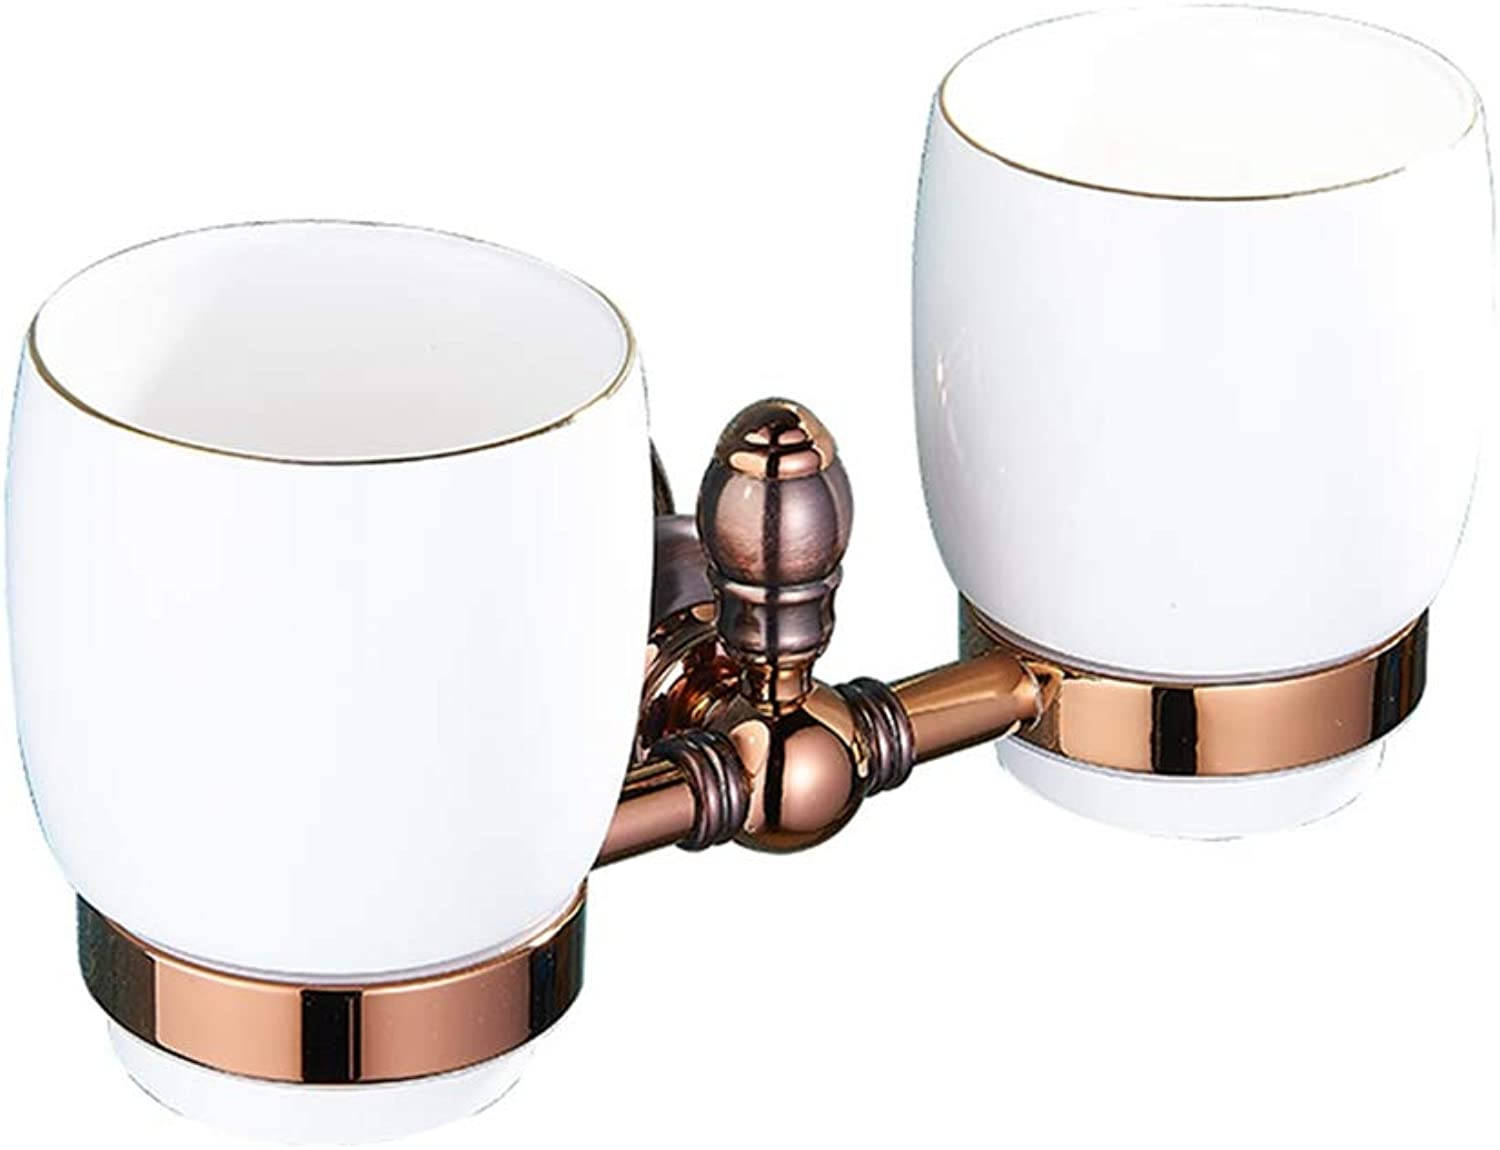 LUDSUY Bathroom accessoriespink gold Cups Metal Pendant Bathroom Toilet Brush Cup Suit All Copper Brown Ancient Dual Cup Holders, B